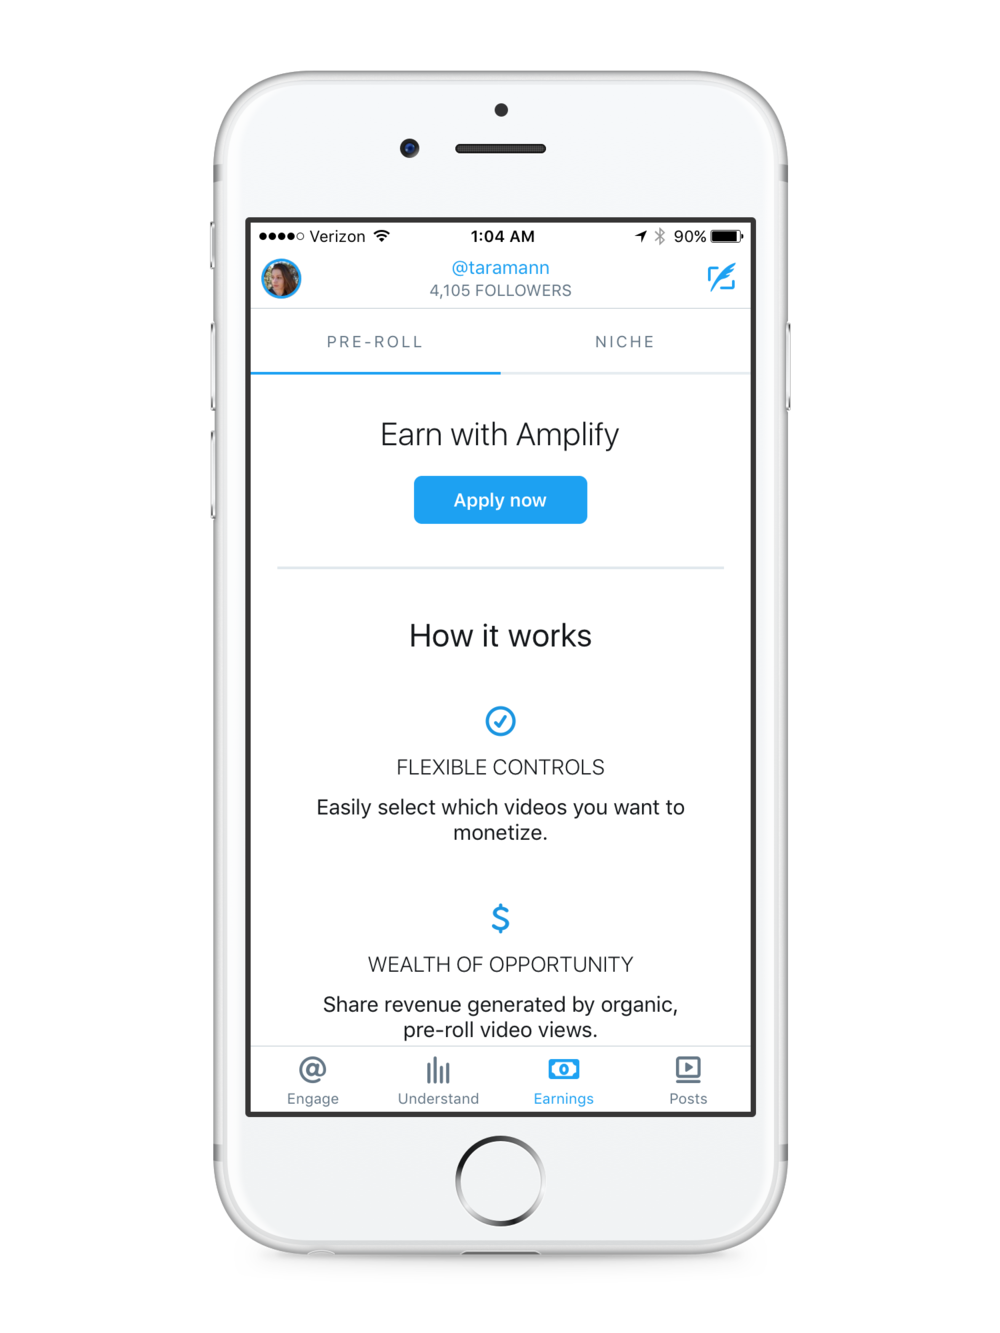 Monetize - Monetize your Twitter content directly in the app through Twitter's Amplify program or Niche (another Twitter product allowing creators to make deals with brands for sponsored content).